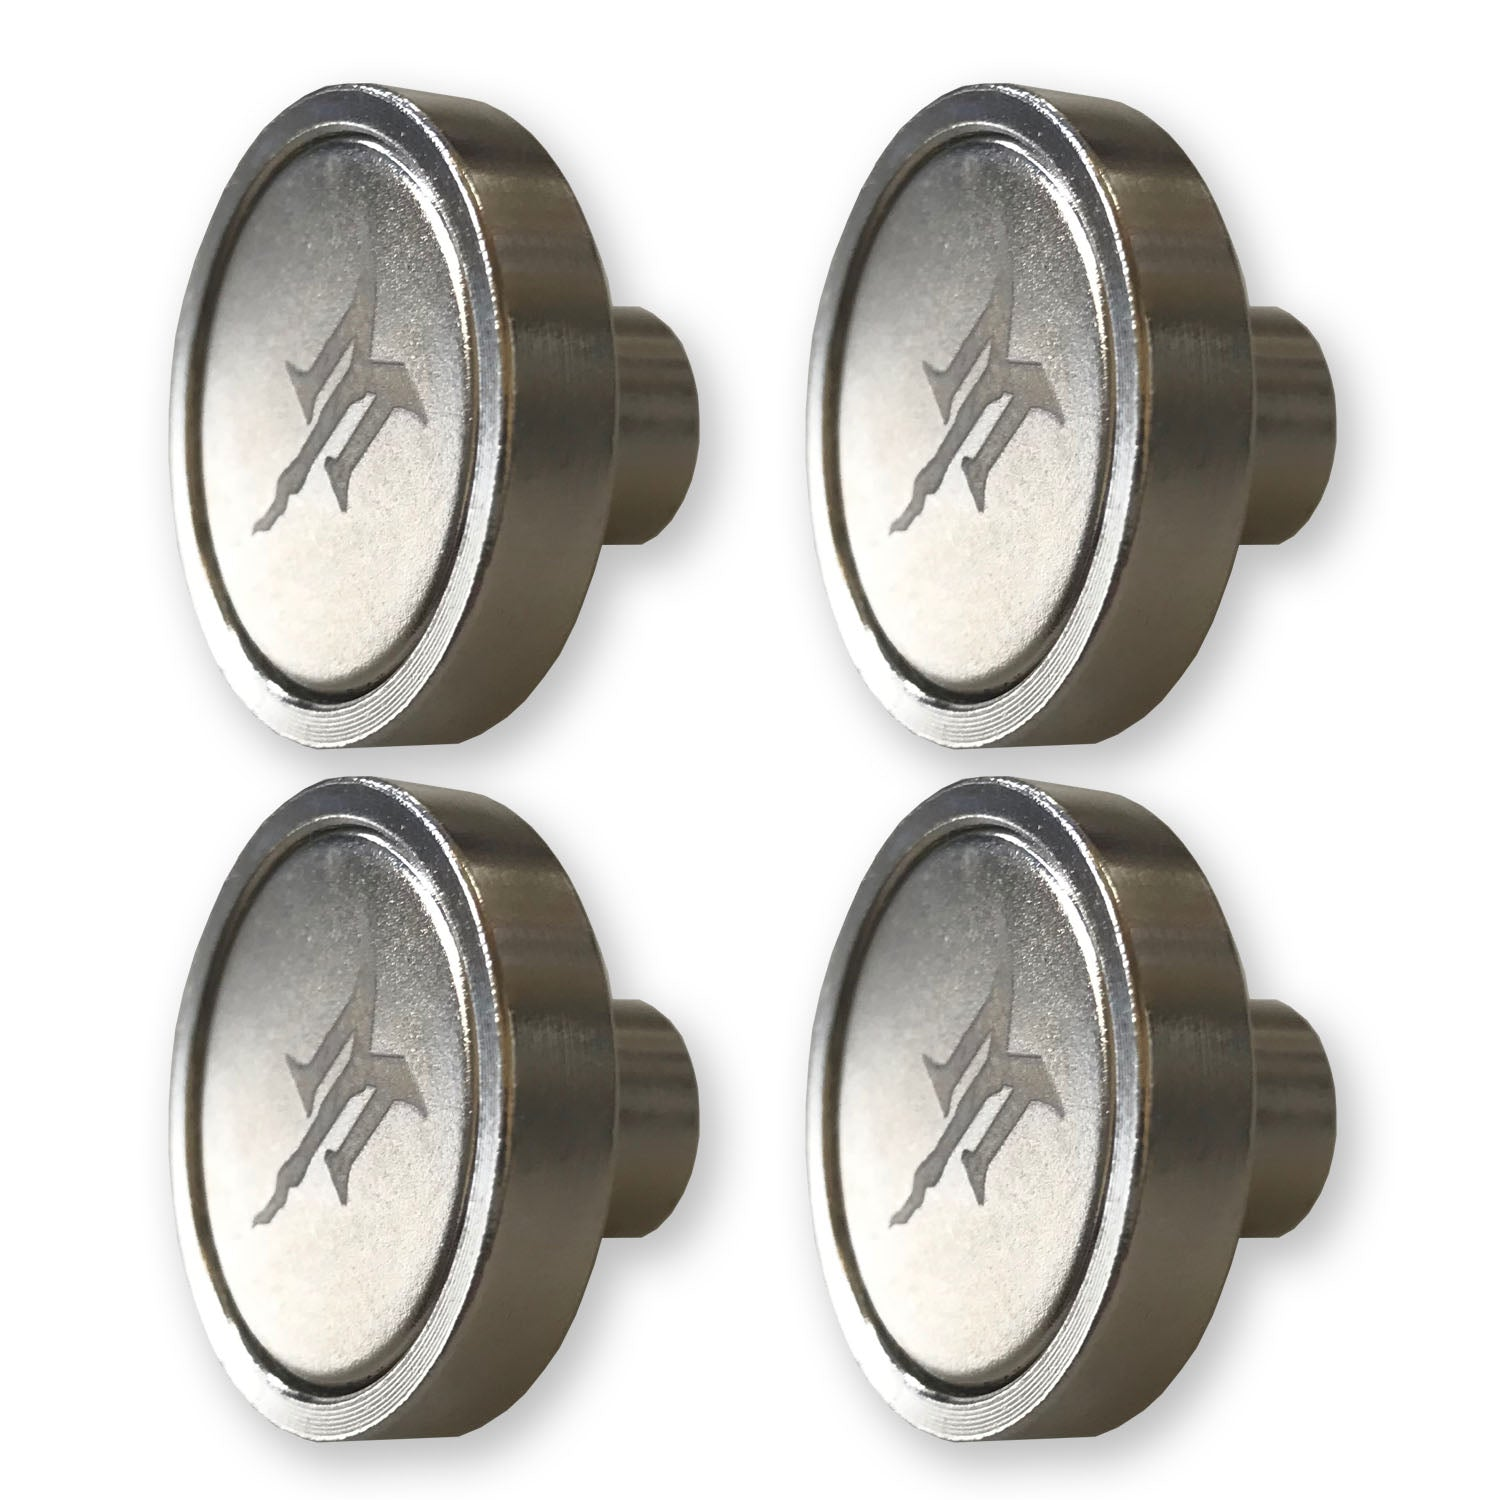 HookMag 1-Inch Neodymium Magnet Base (Female M4 Threads) - 4 Pack